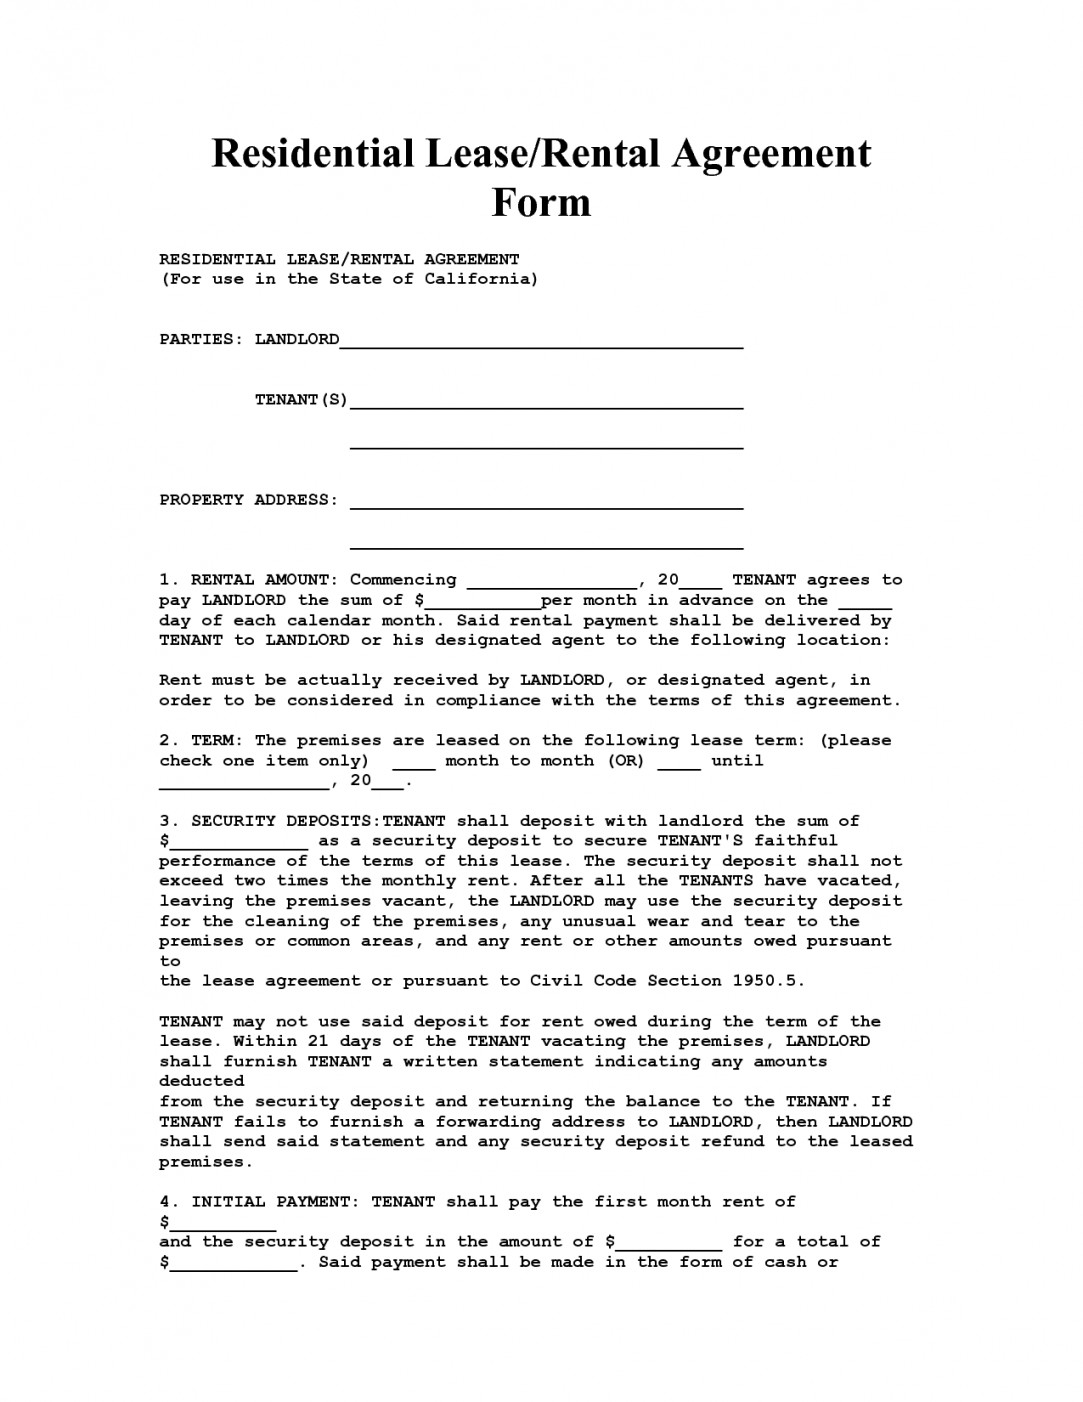 Asset Lease Agreement Template Pic Blank Residential Lease Agreement Manqal Hellenes Co